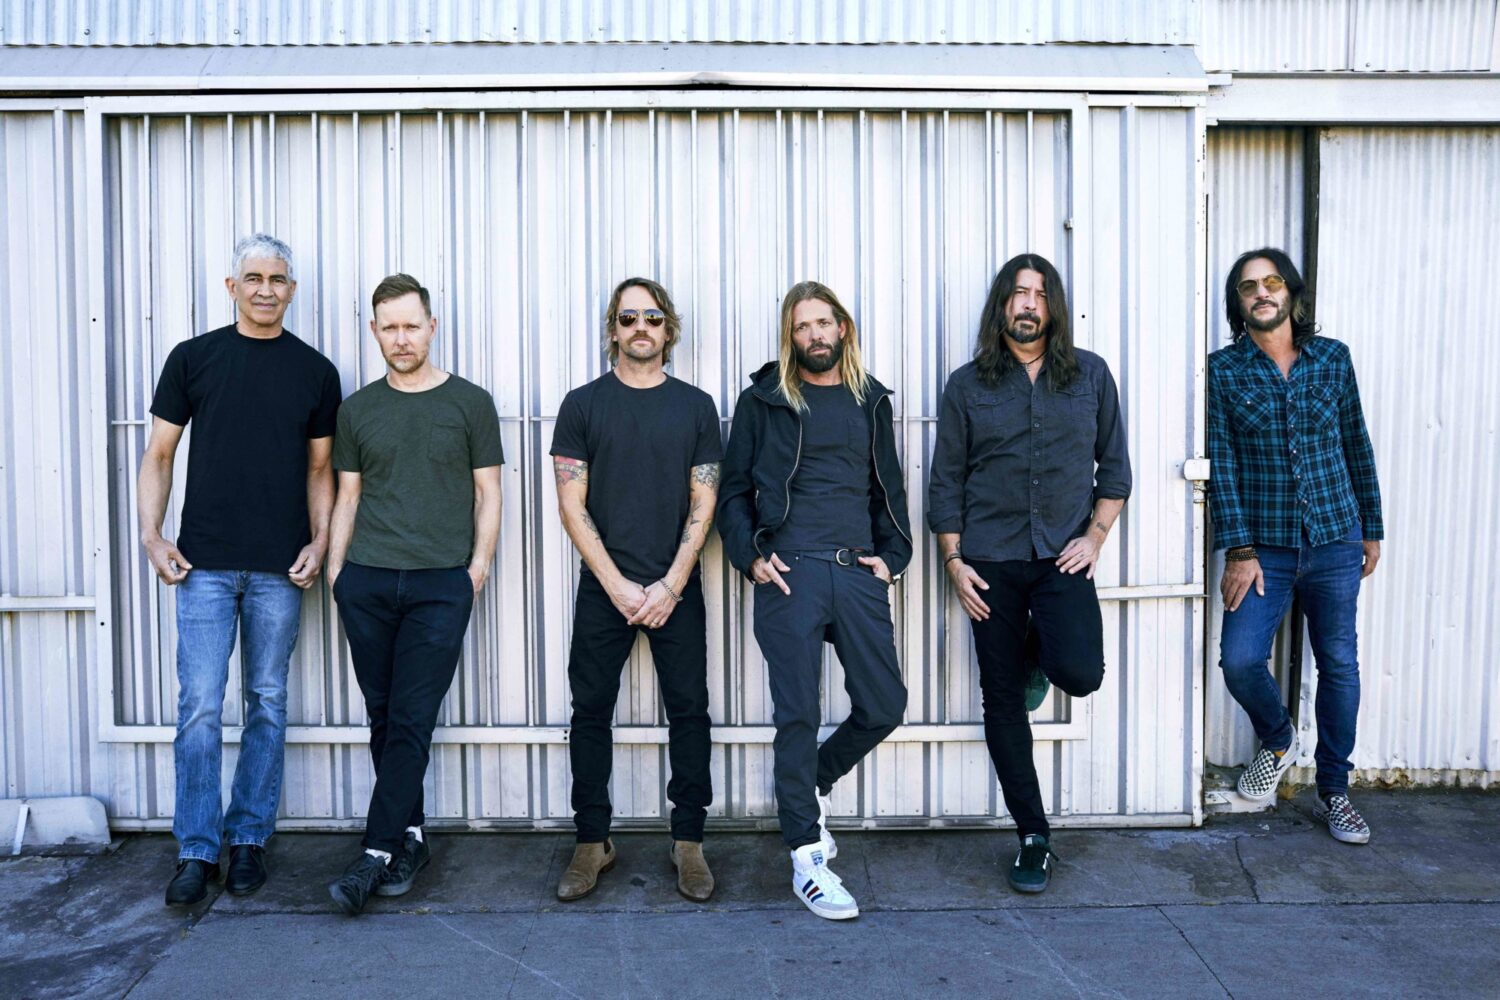 Foo Fighters unleash 'No Son Of Mine' video